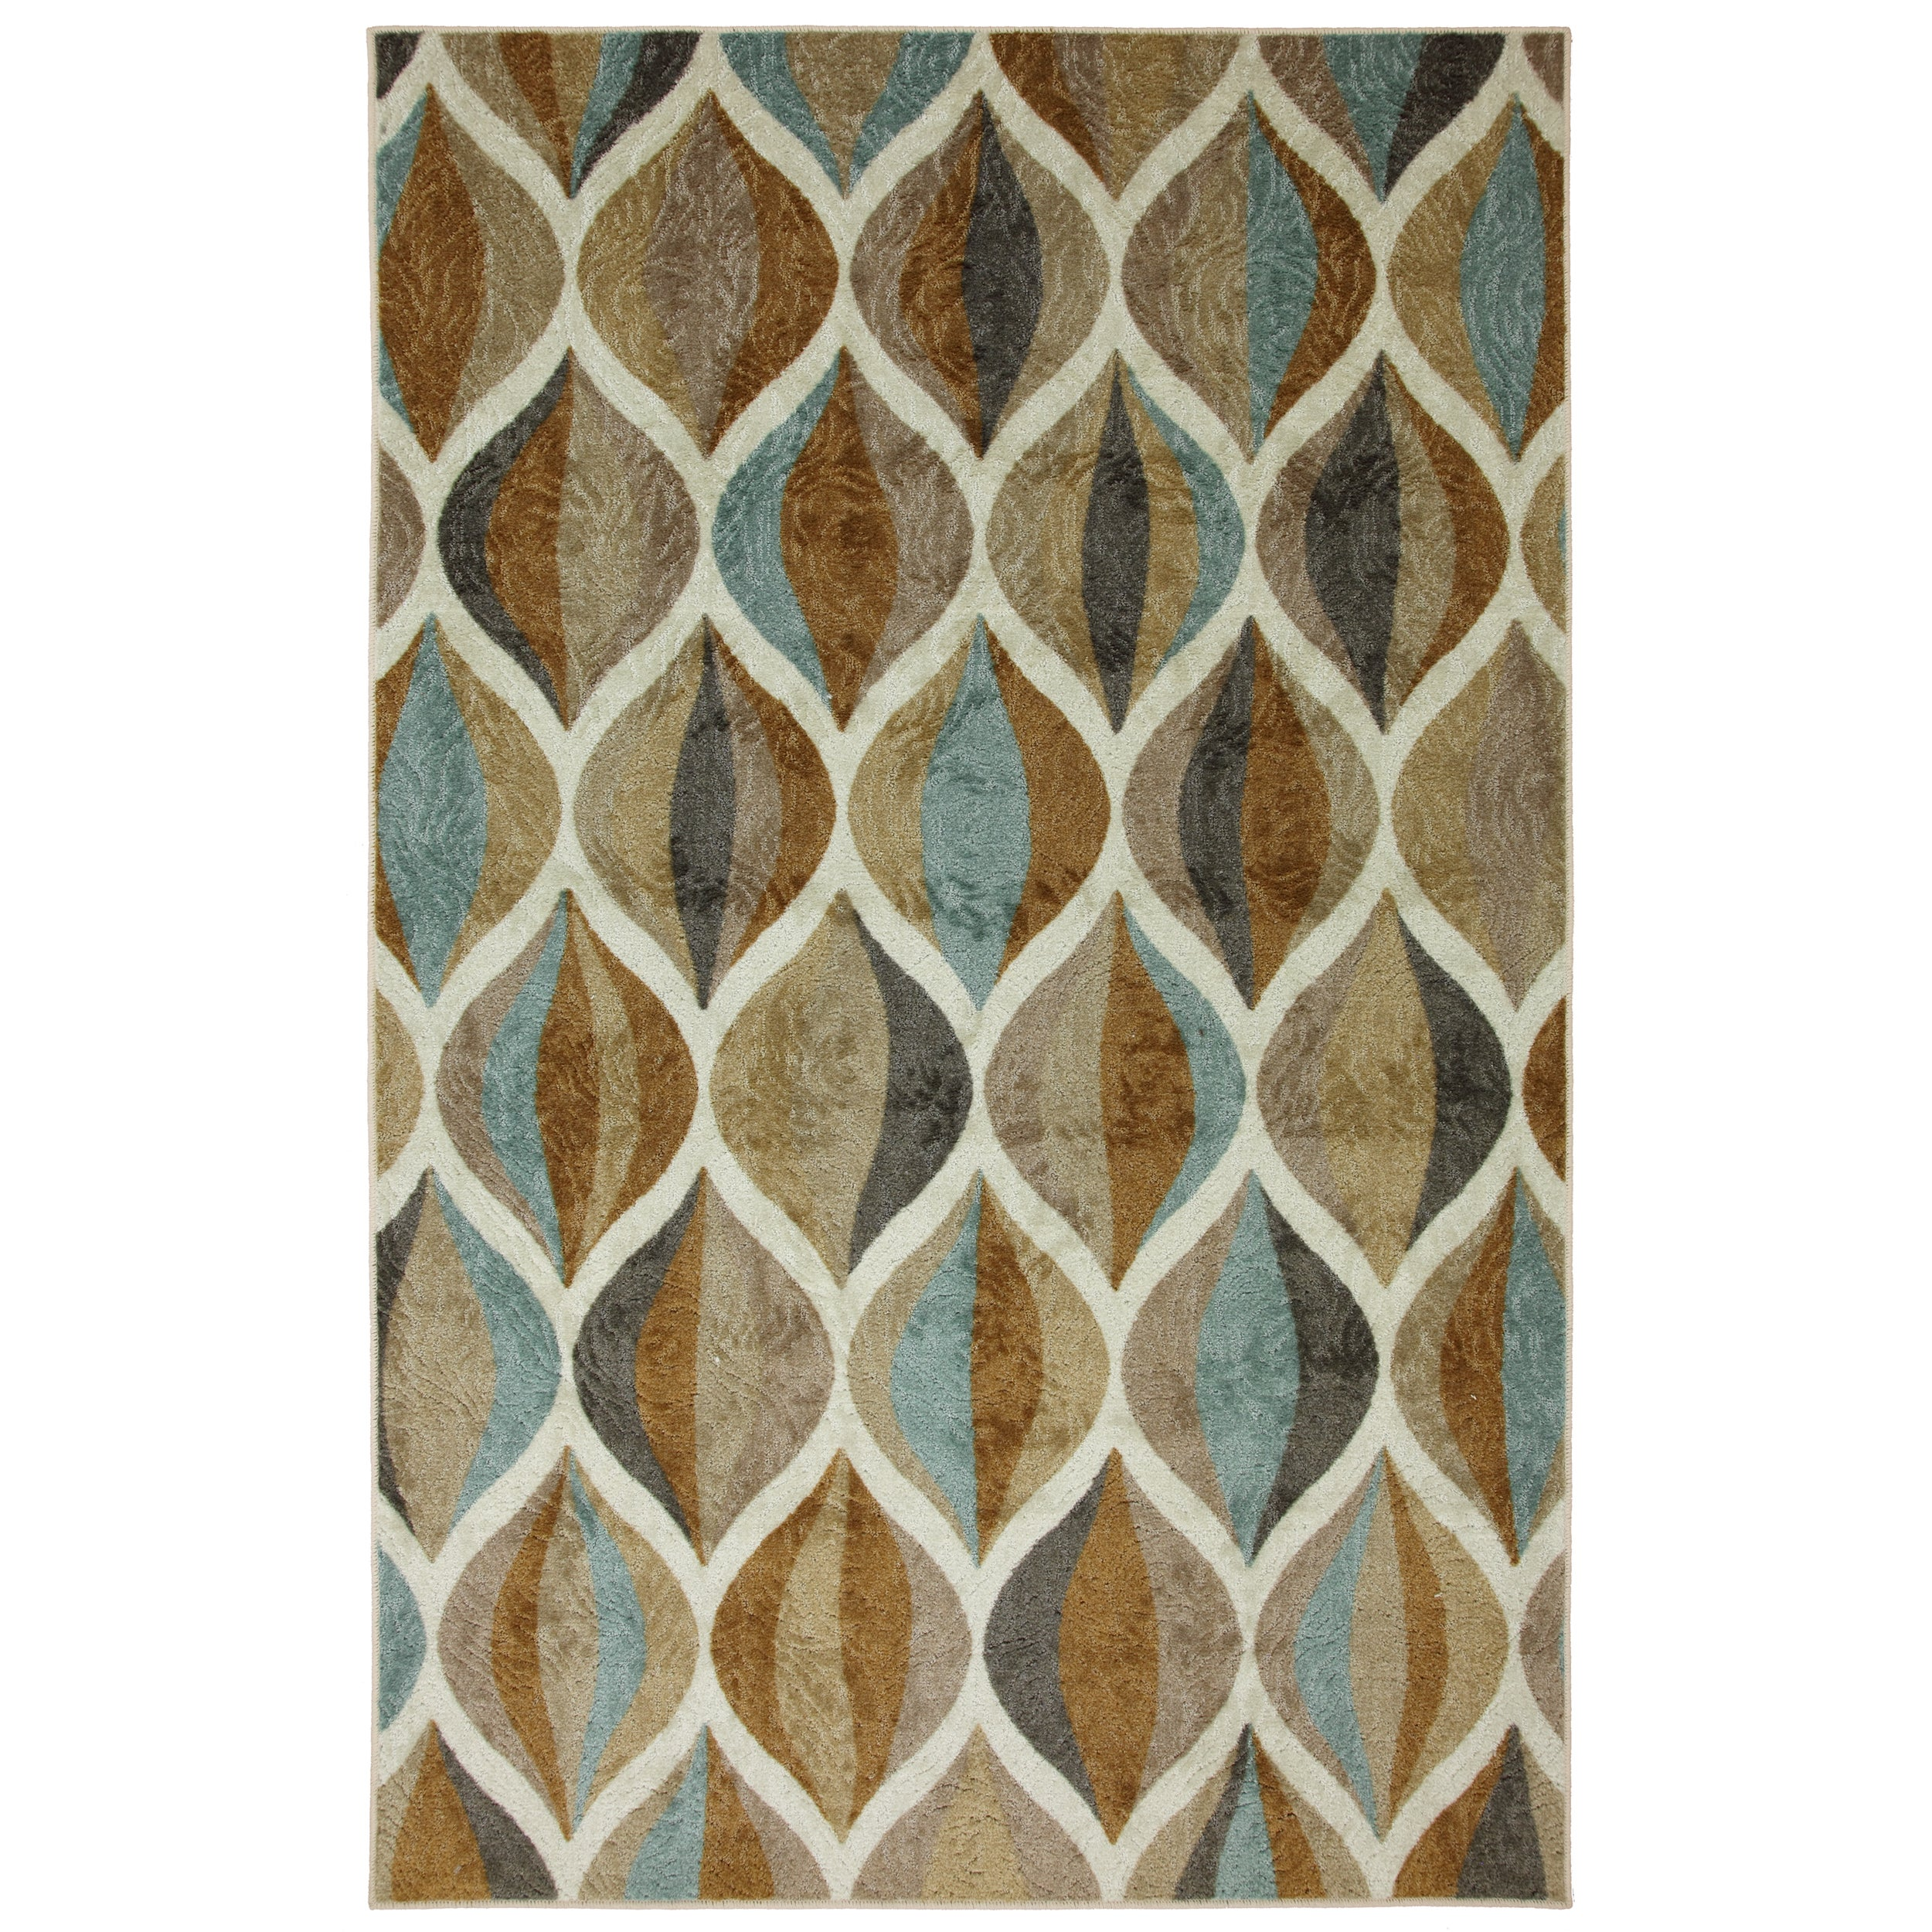 "MOHAWK Home New Wave Ornamental Ogee Area Rug (7'6"" x 10'..."